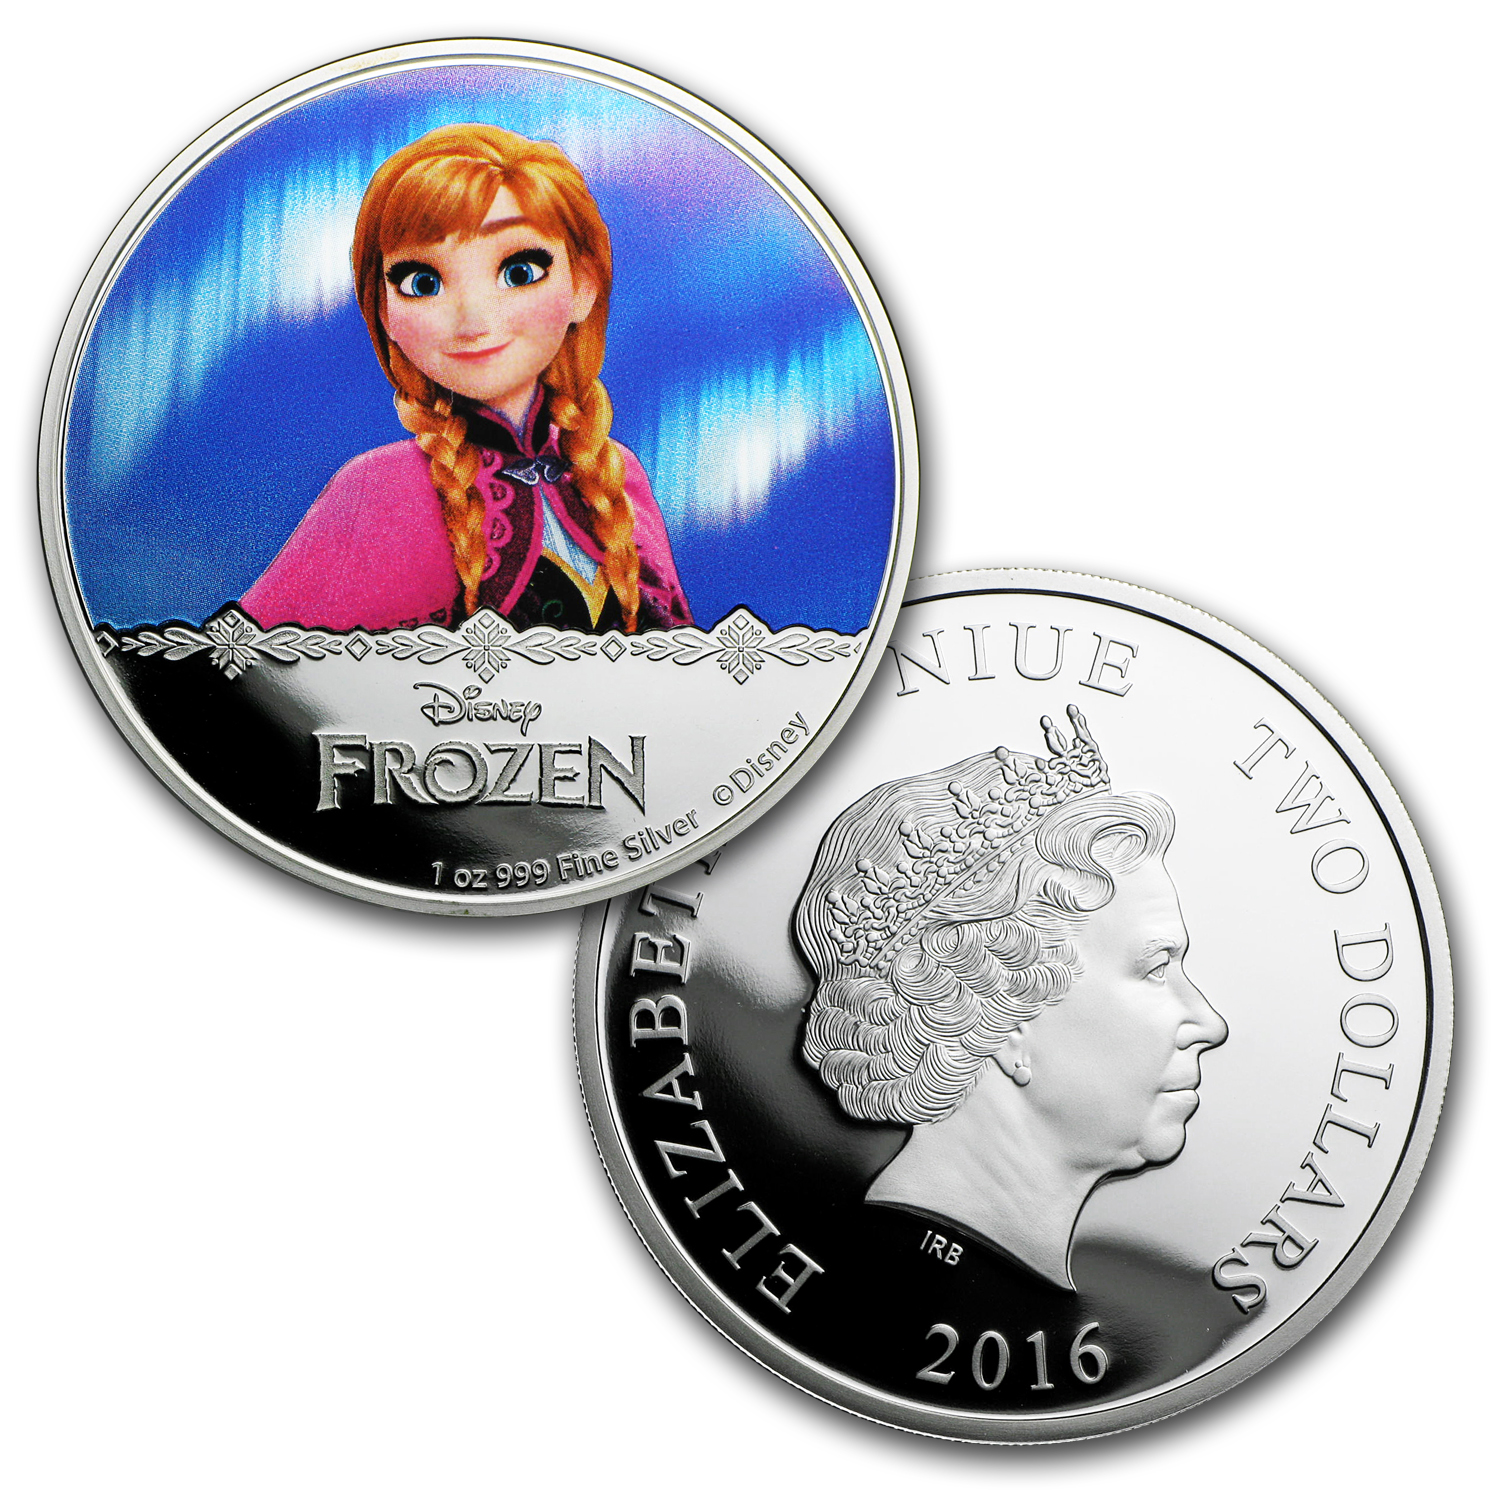 2016 Niue 1 oz Silver $2 Disney Frozen: The Complete Set